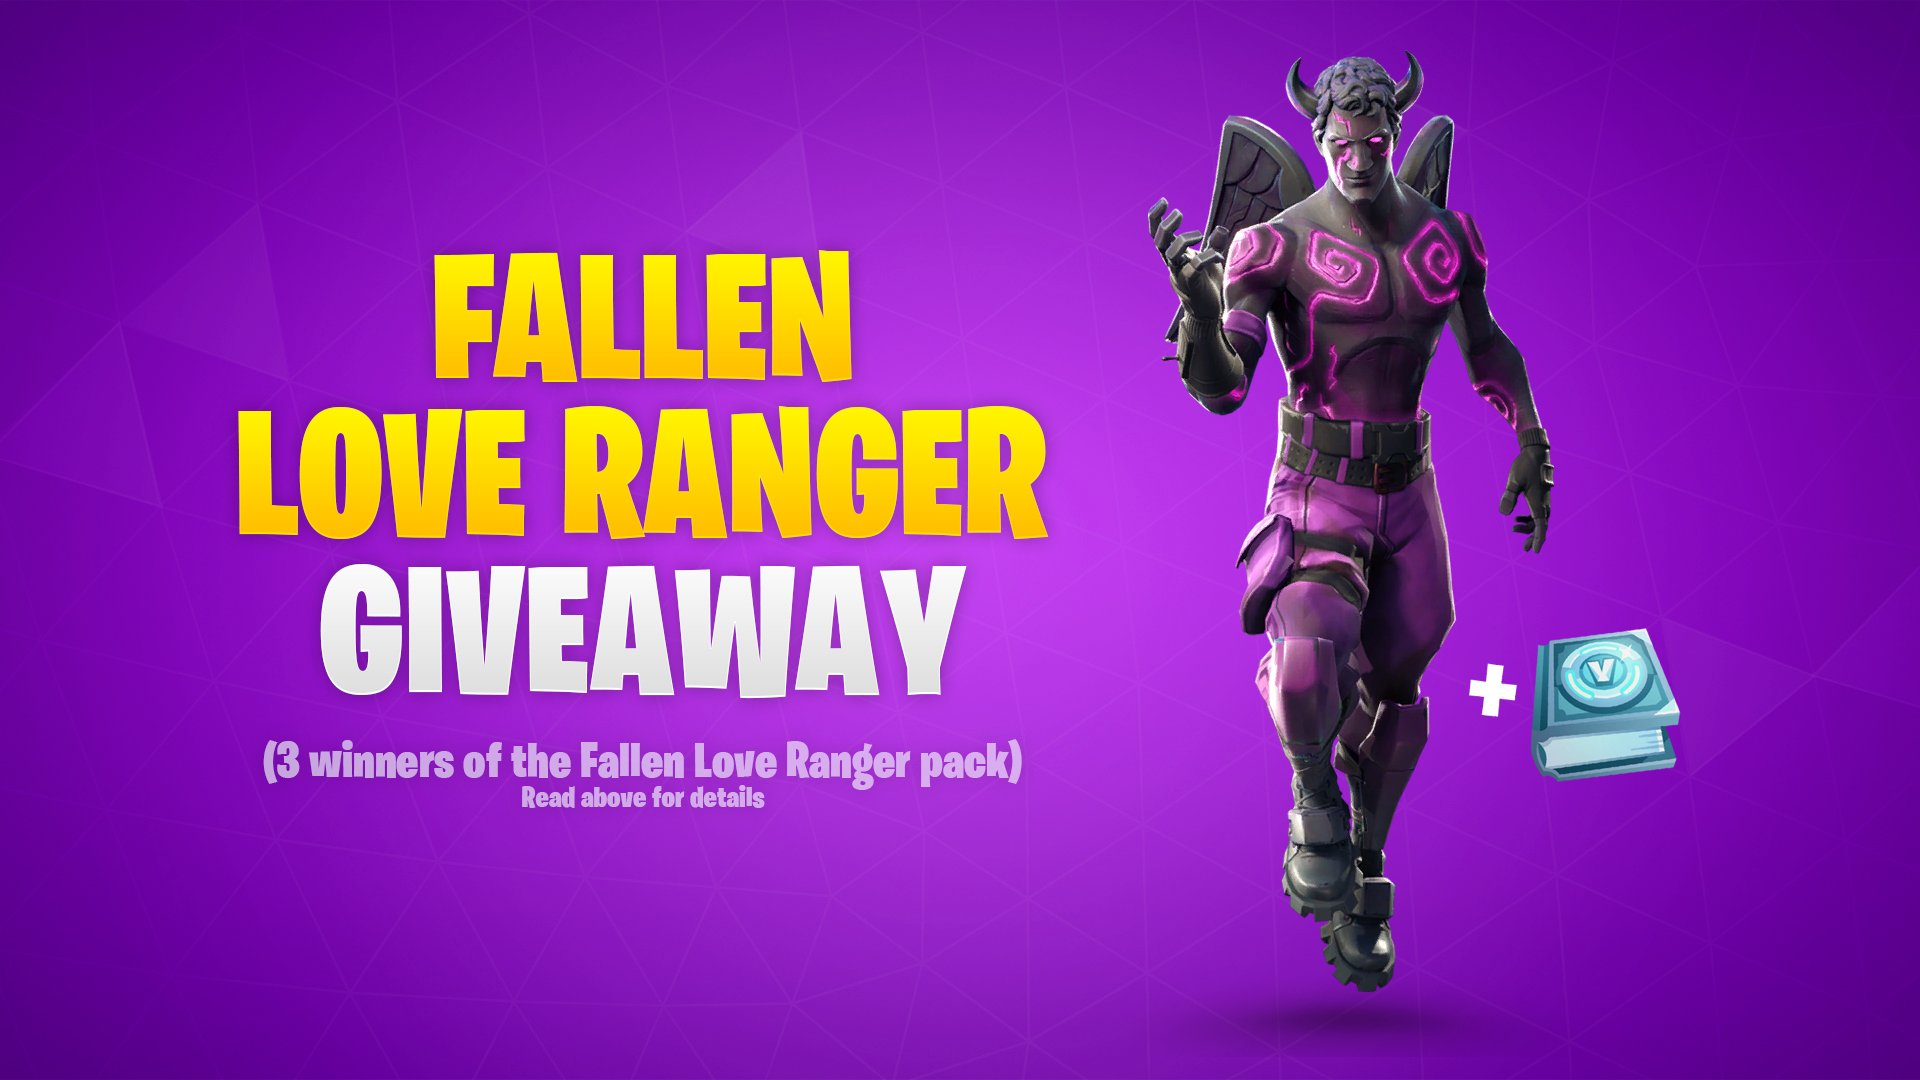 Fortnite News On Twitter Let S Give Away Some Of The New Fallen Love Ranger Packs To Enter Follow Bnwkr Follow Fortnitebr Retweet This Tweet 3 Winners Will Be Drawn